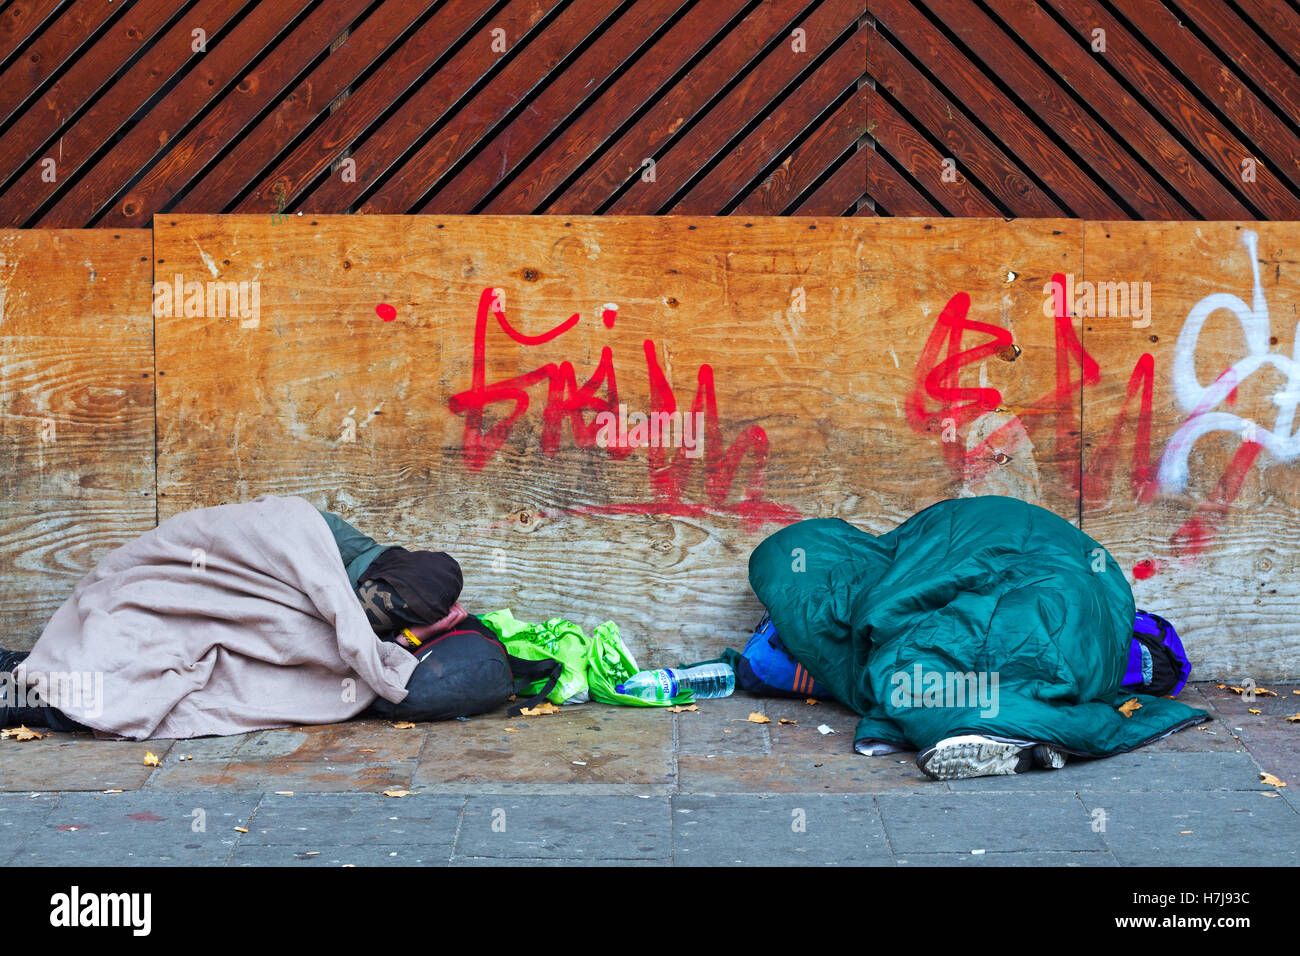 Two homeless people sleeping out on the streets of Liverpool UK - Stock Image